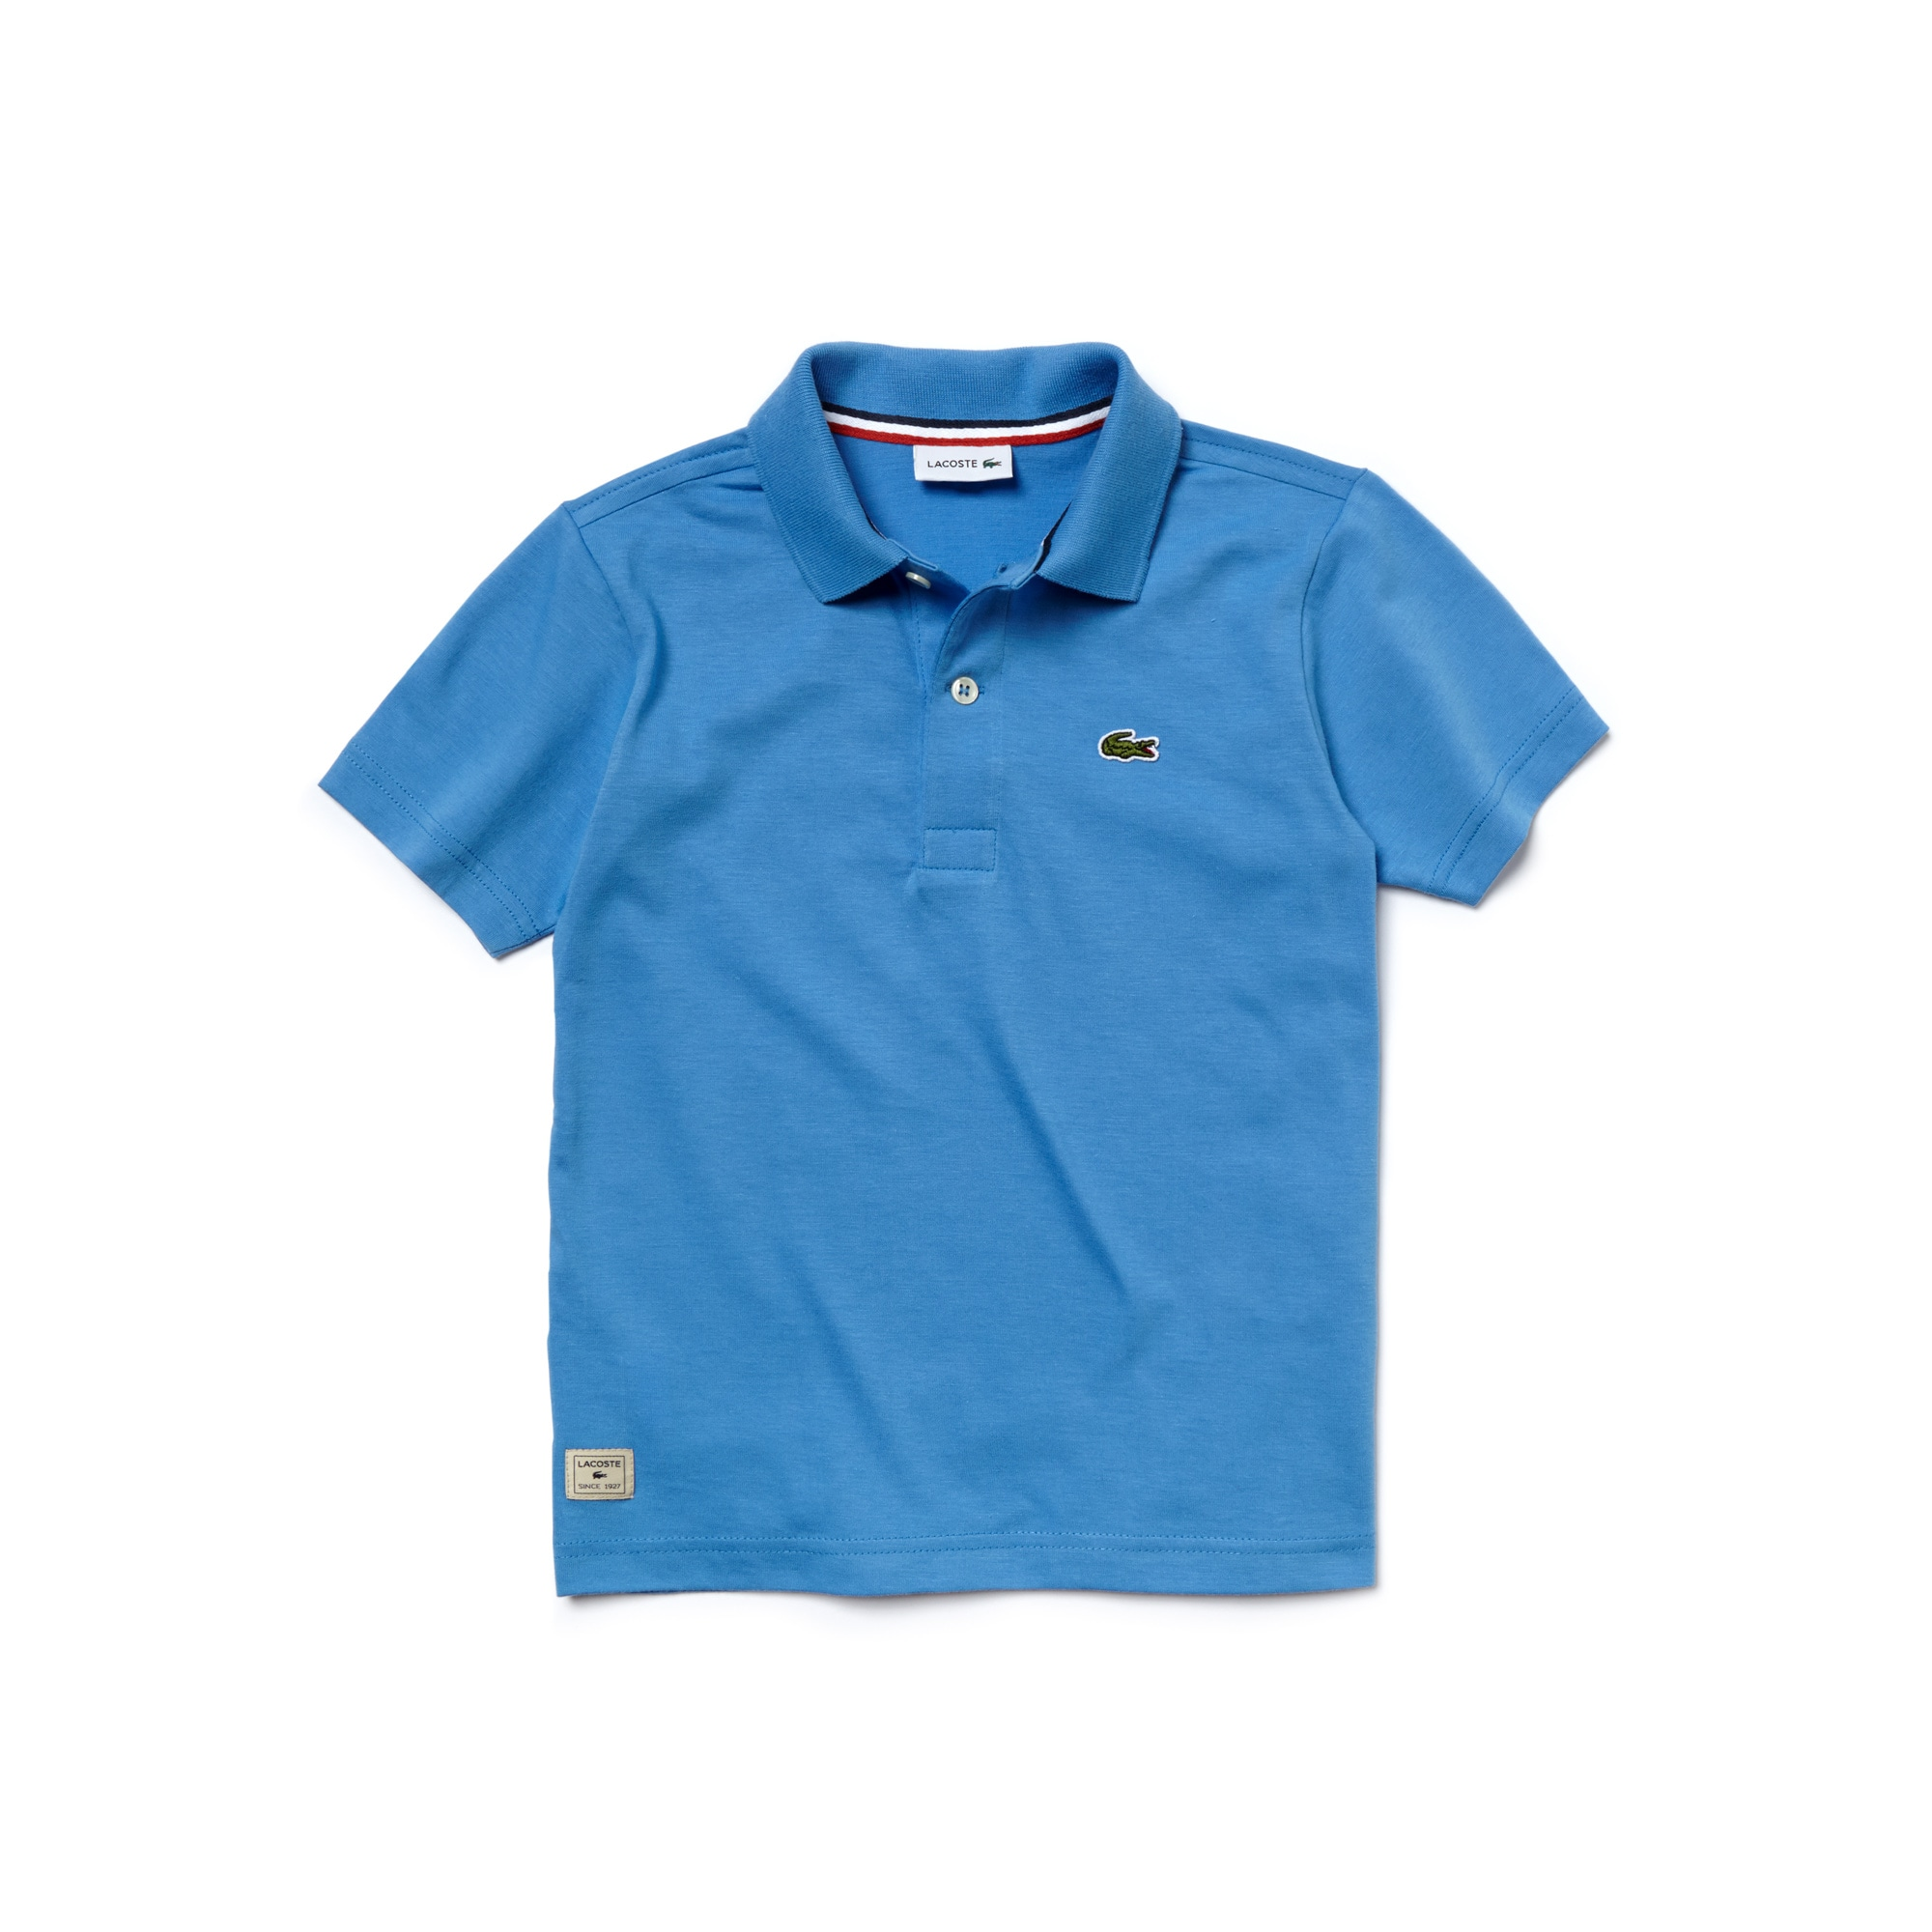 Boy's Solid Jersey Cotton Polo Shirt